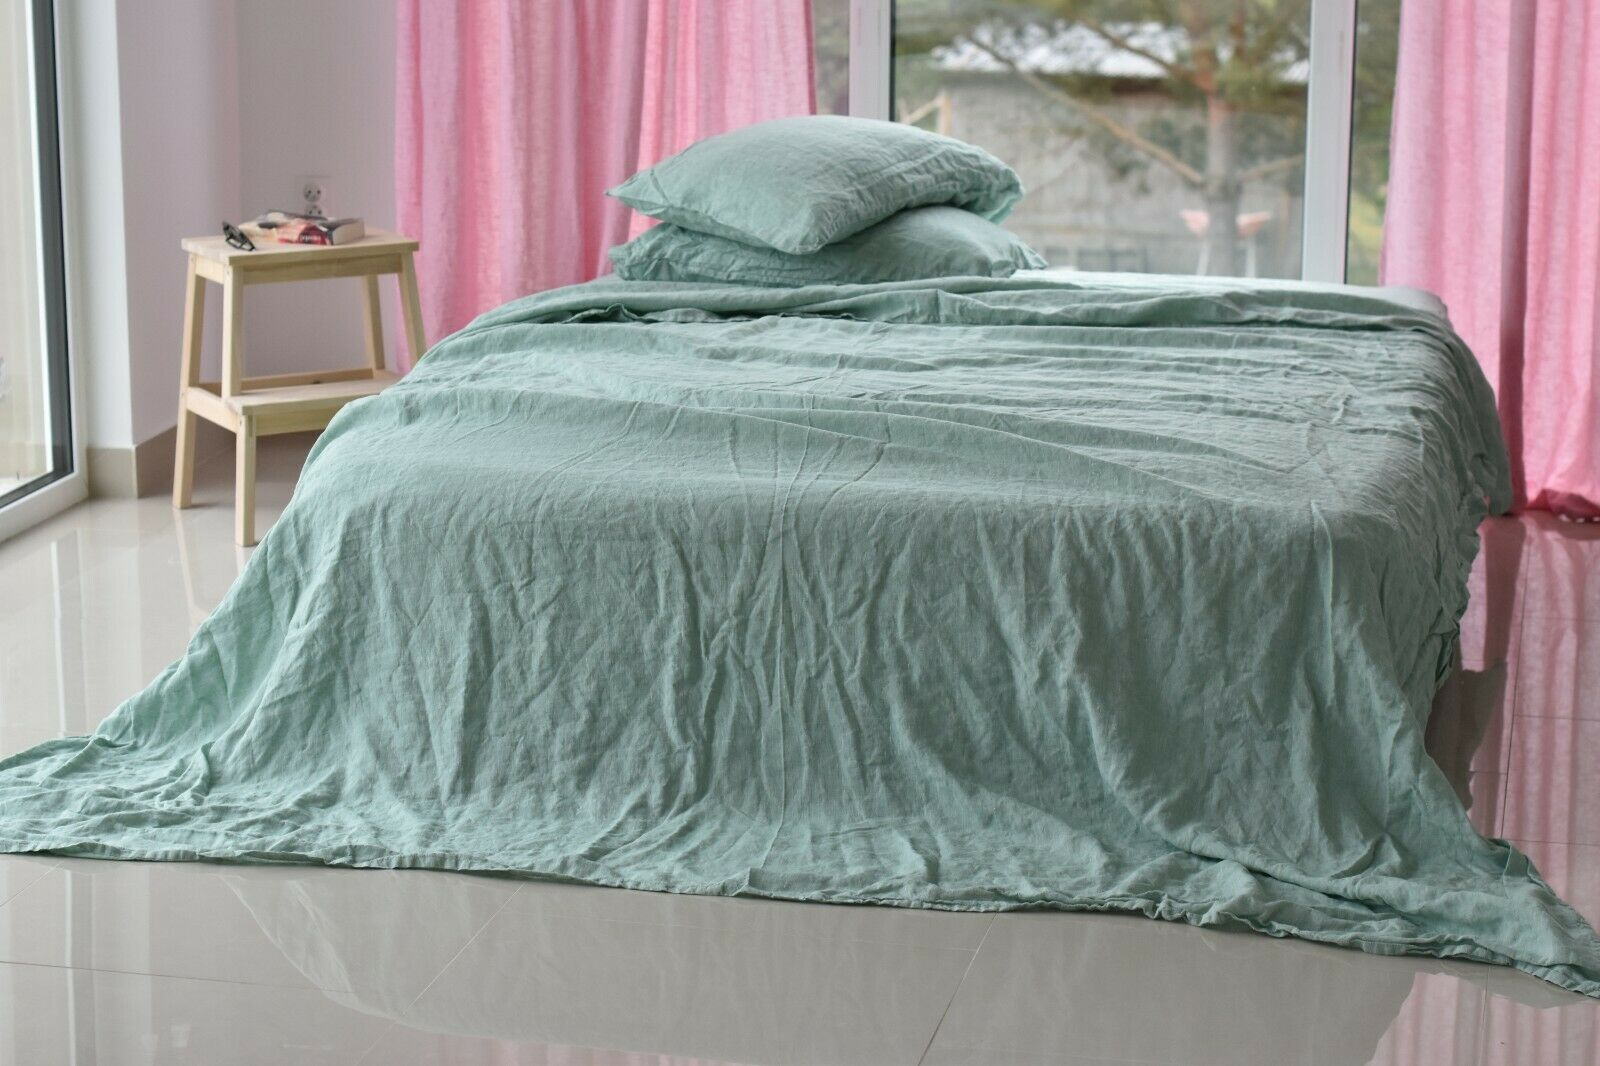 LINEN SHEET SET in a melange Grün Queen King Twin linen bedding set Luxury Eco